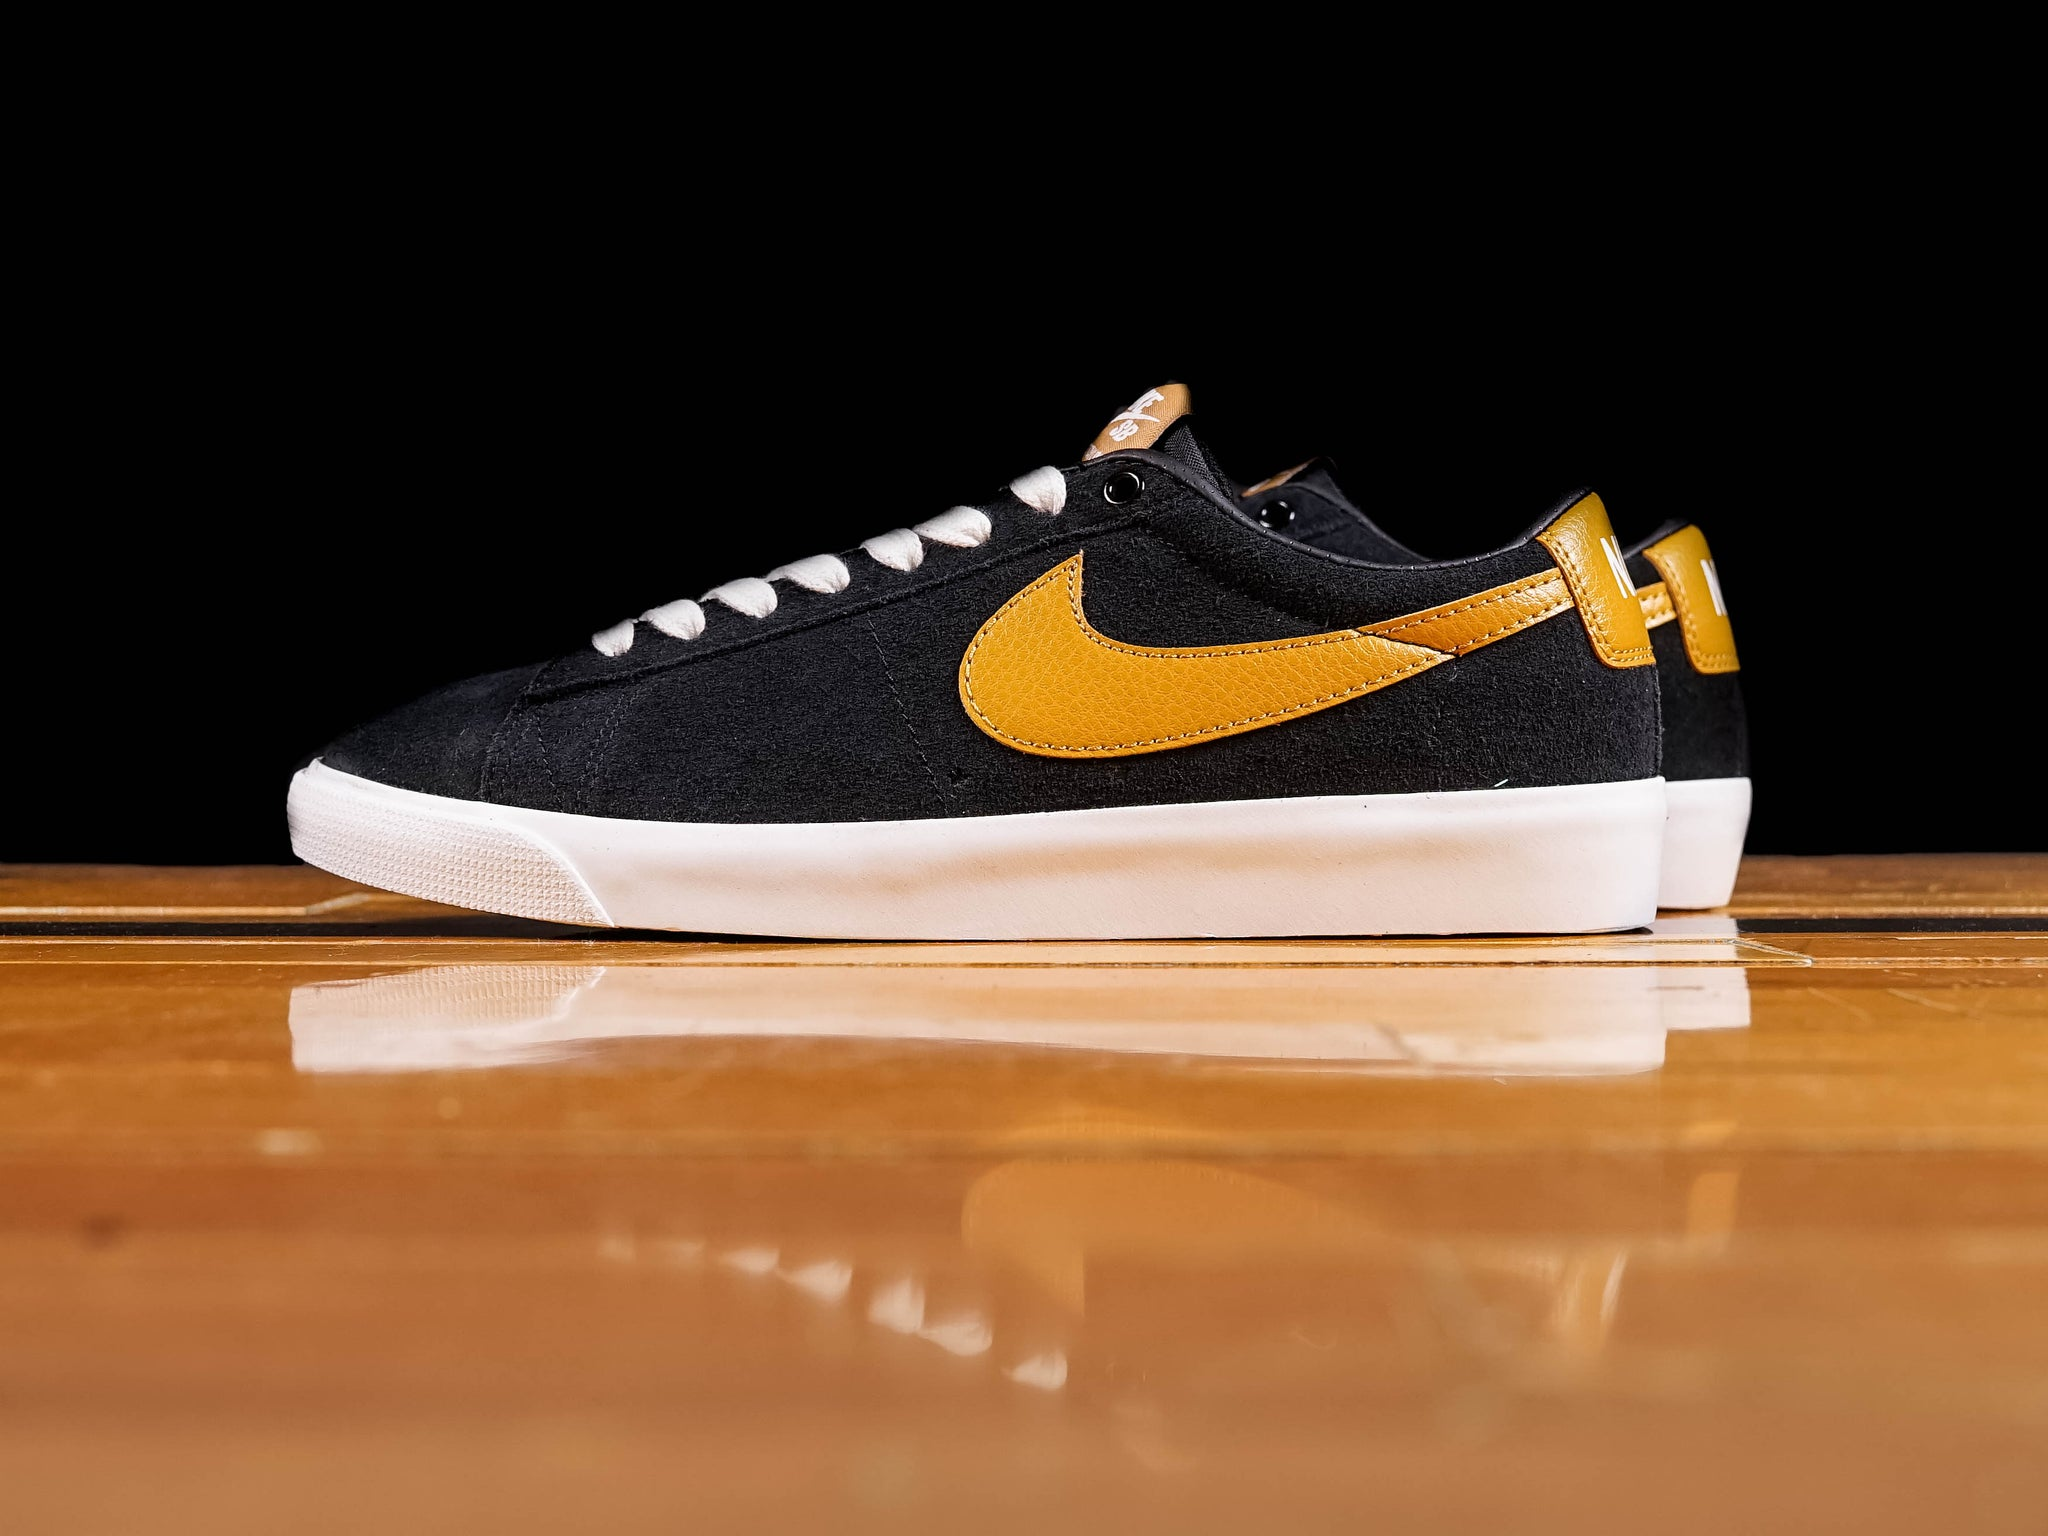 100% authentic 3c531 a4407 Men's Nike SB Zoom Blazer Low GT [704939-004]